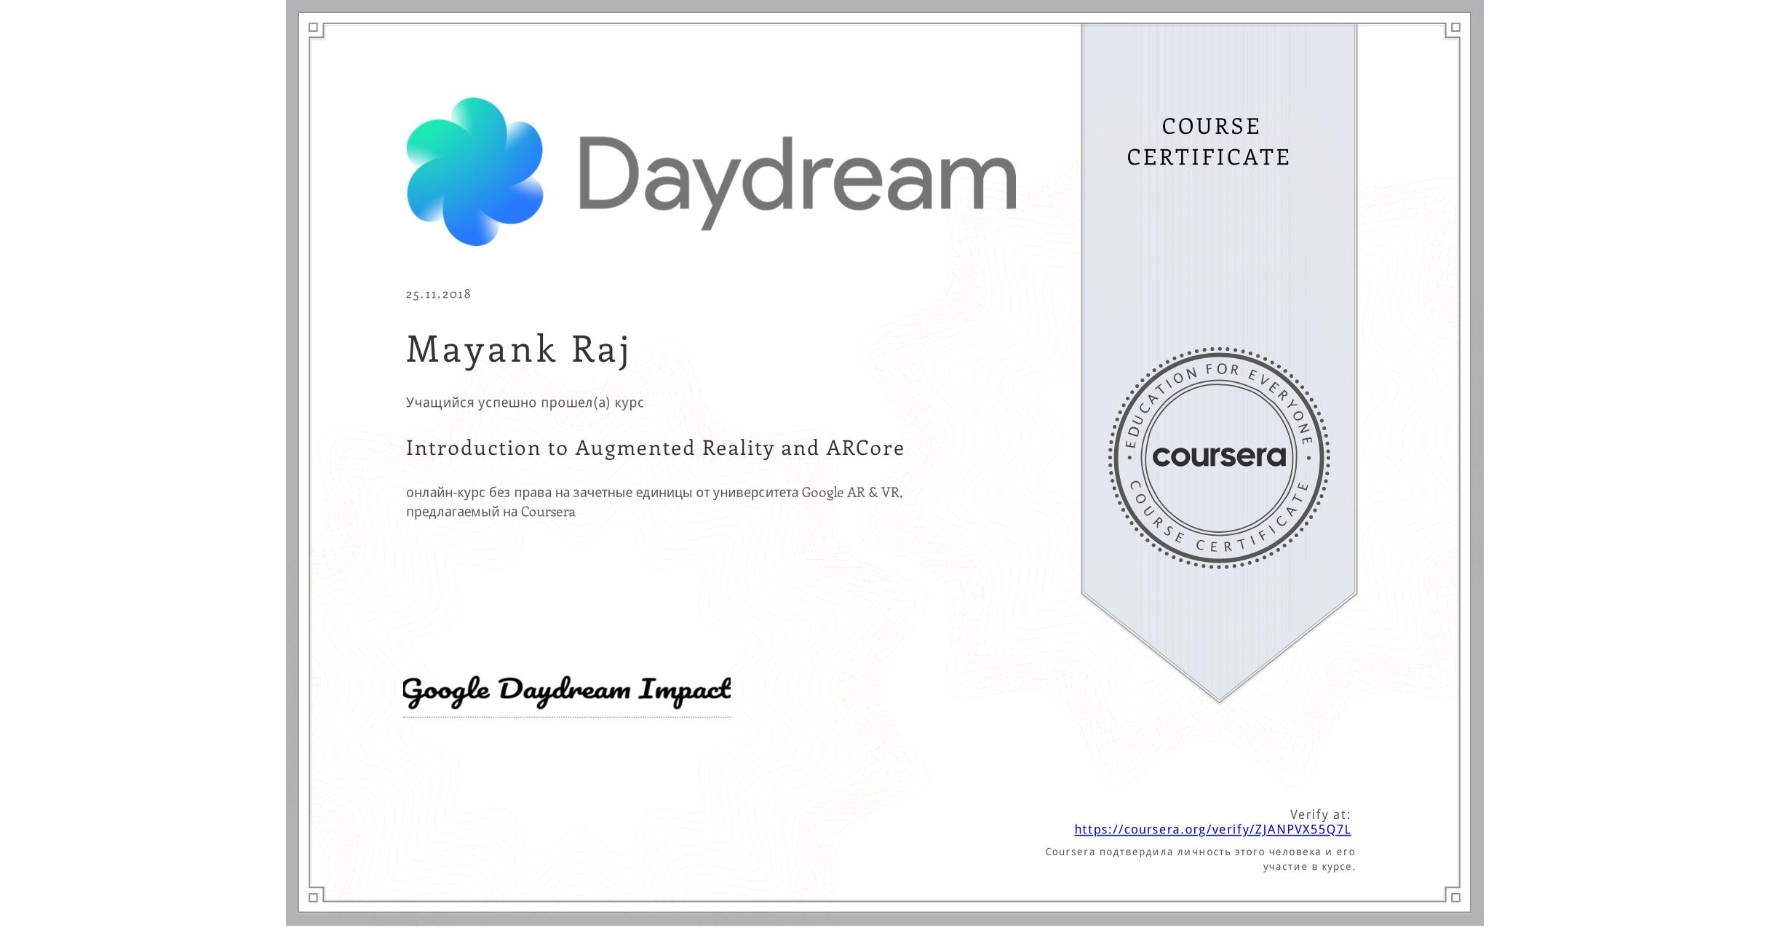 View certificate for Mayank Raj, Introduction to Augmented Reality and ARCore, an online non-credit course authorized by Google AR & VR and offered through Coursera